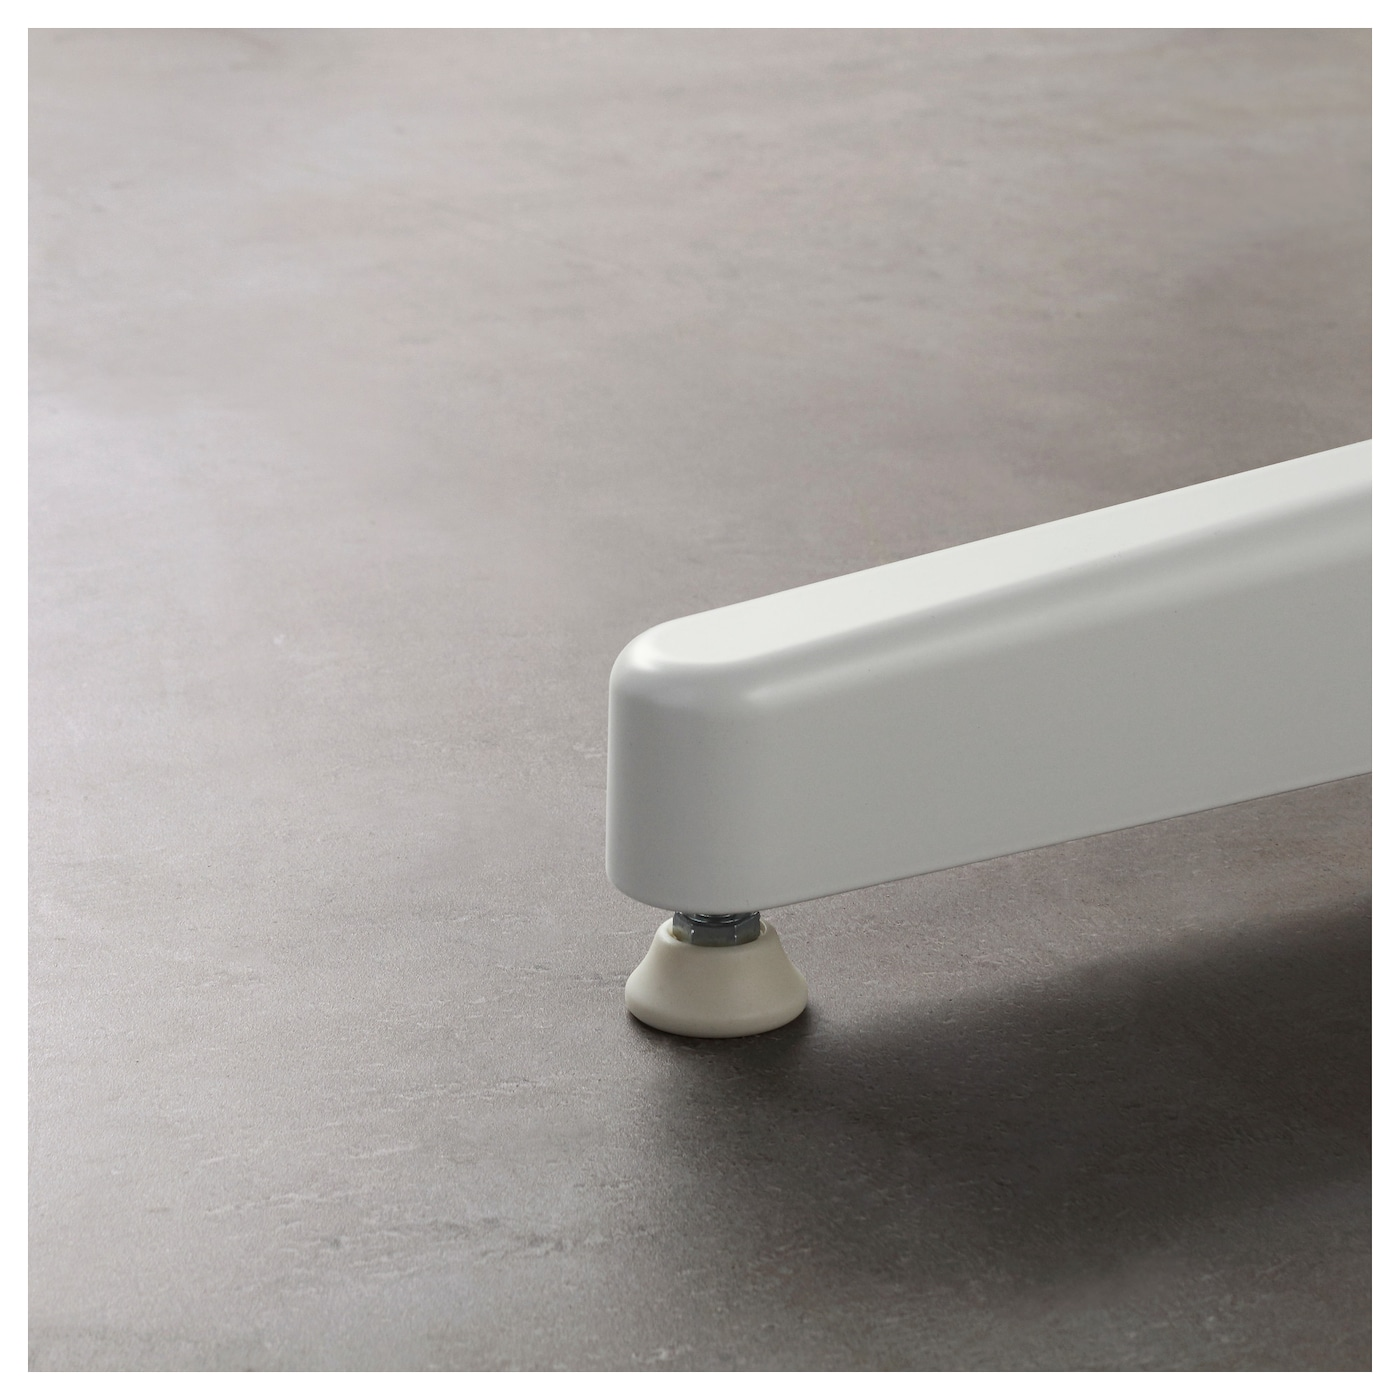 IKEA ALGOT foot Can also be used in bathrooms and other damp areas indoors.